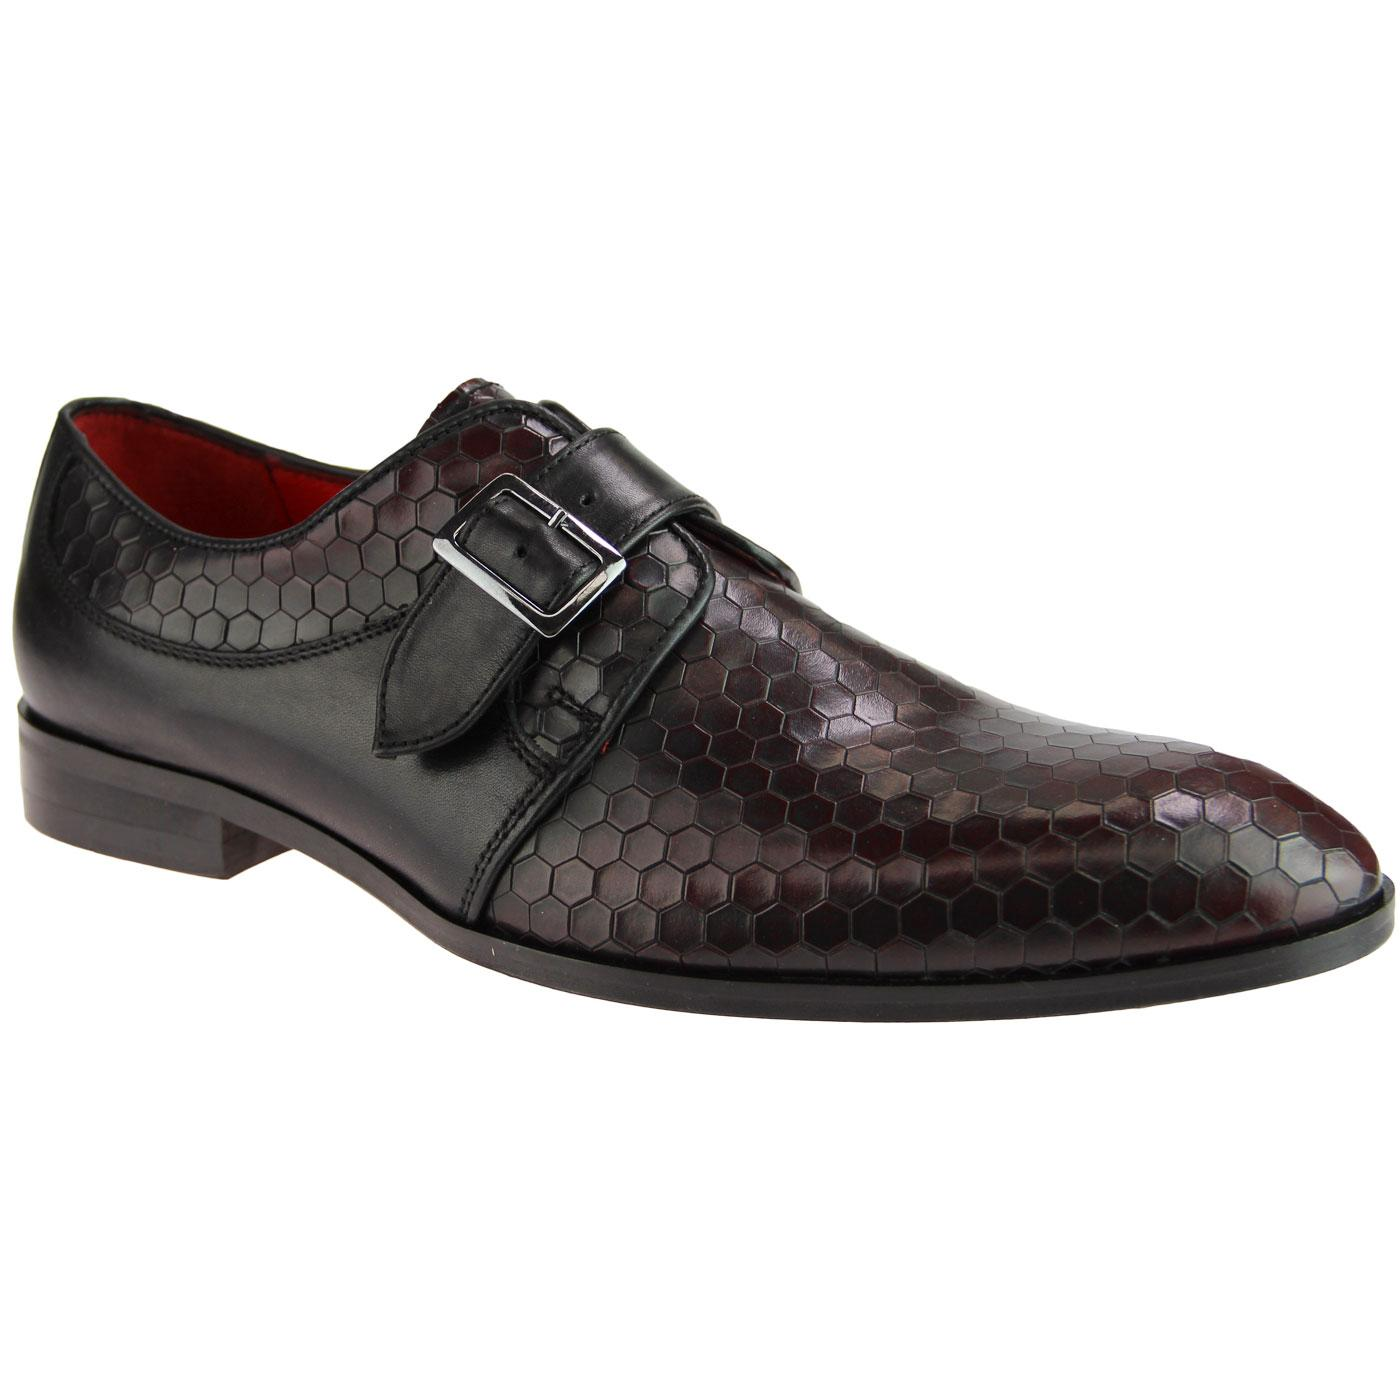 Lane LACUZZO Mod Honeycomb Leather Loafers CLARET